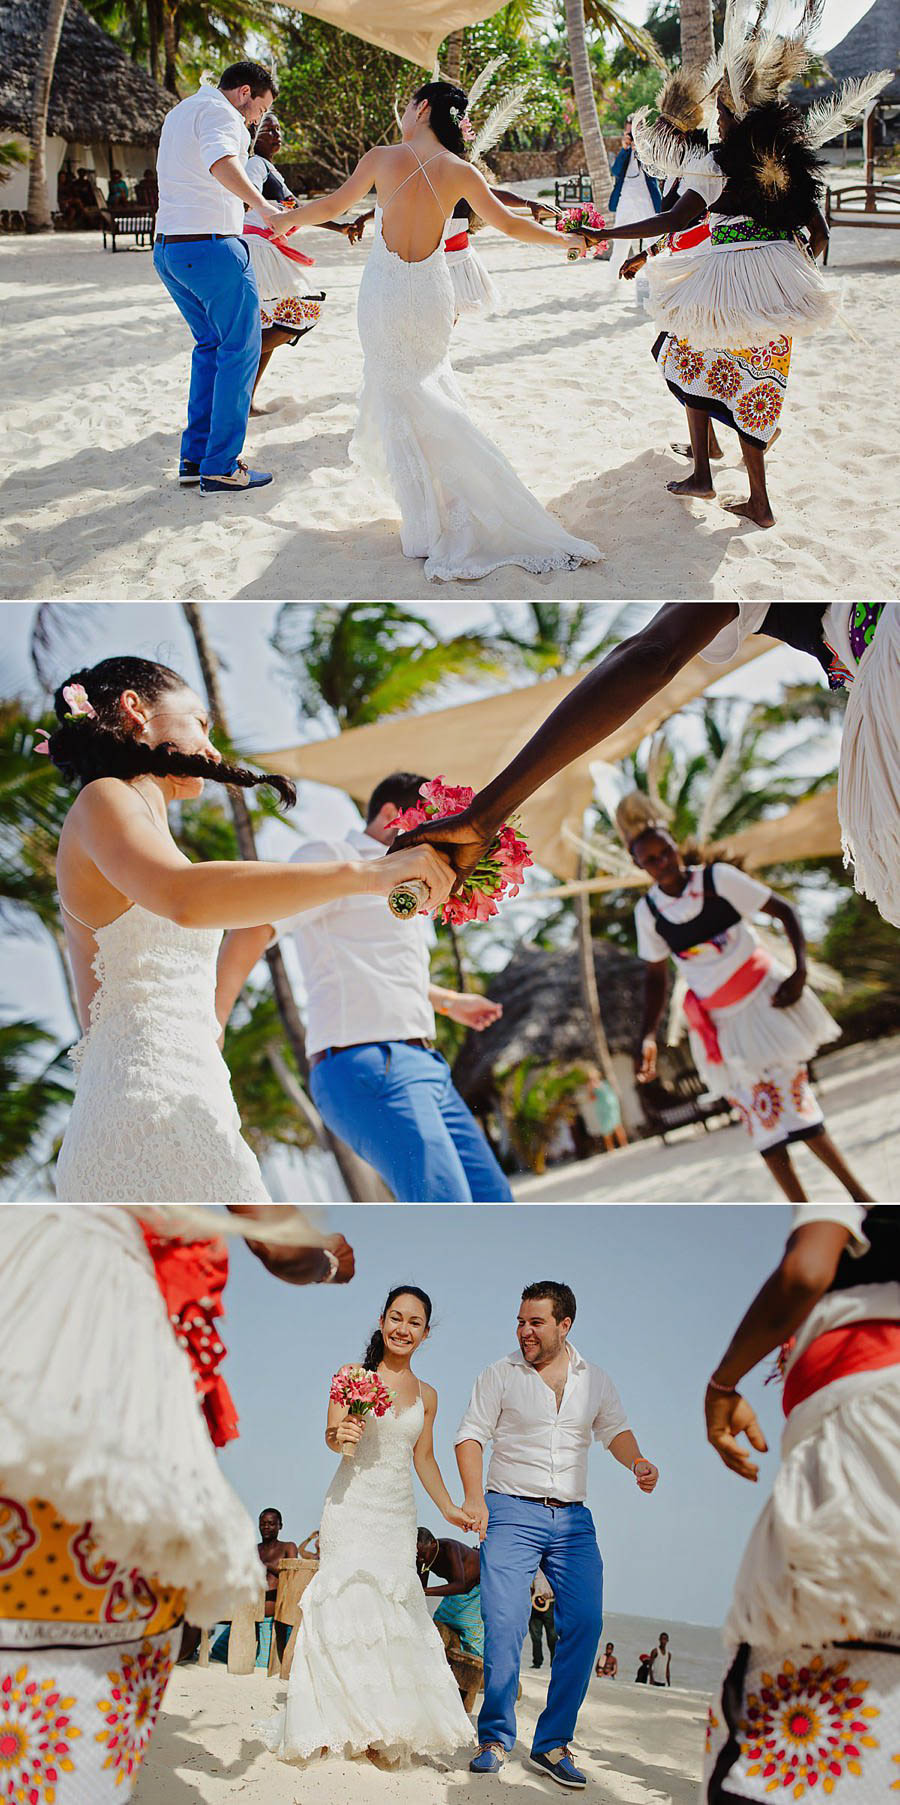 zanzibar_tanzania_kenya_malindi_beach_multicultural_wedding_photography_mamalovebabamarry_0016.jpg